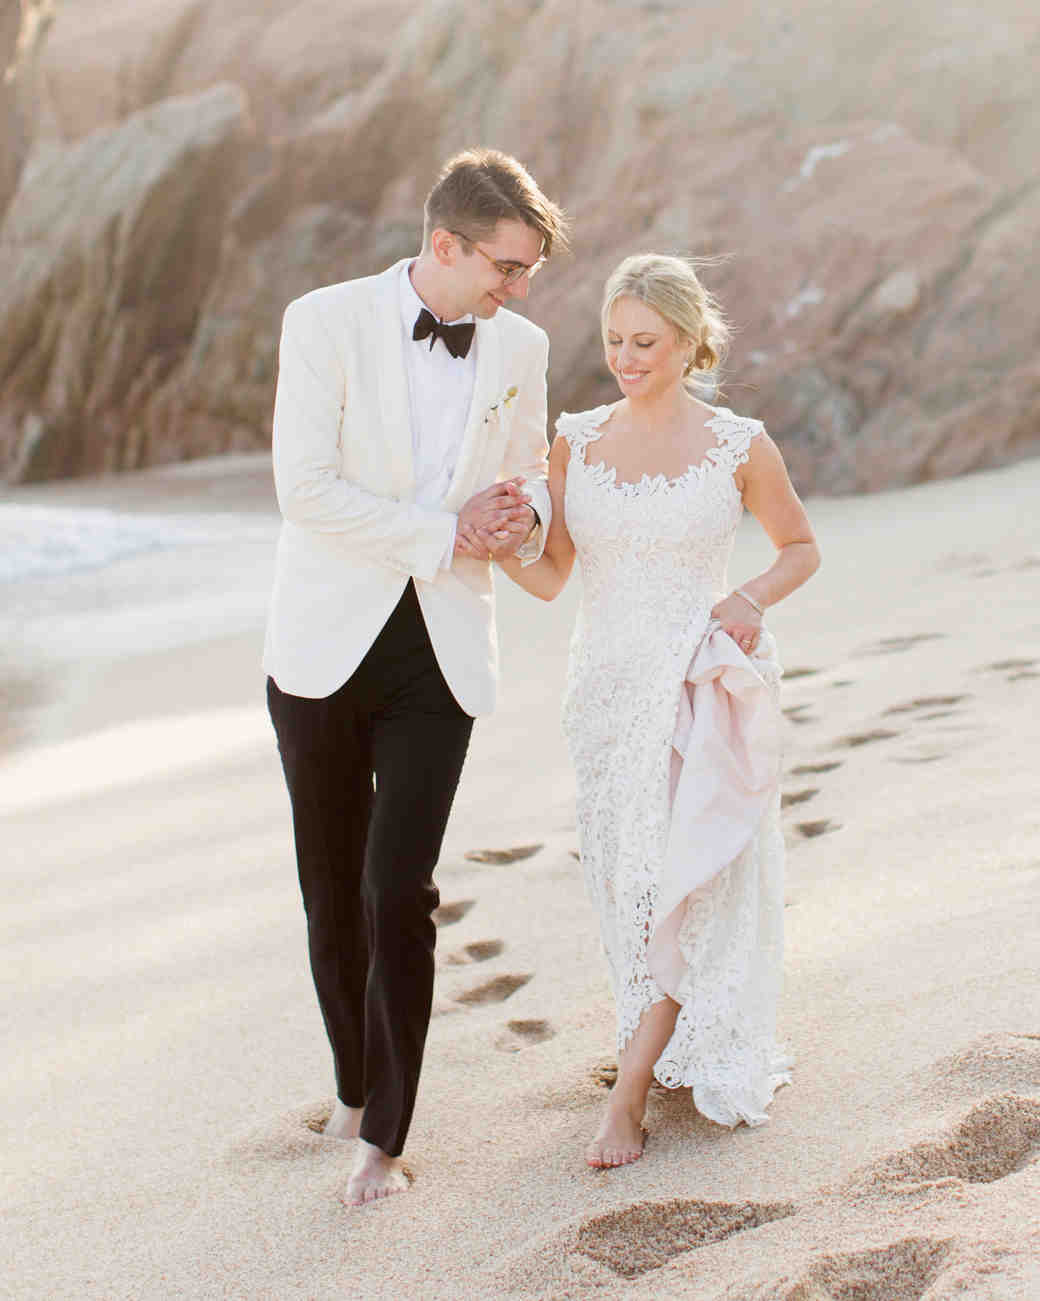 Veronica and Mathieu's Chic Oceanside Mexico Wedding